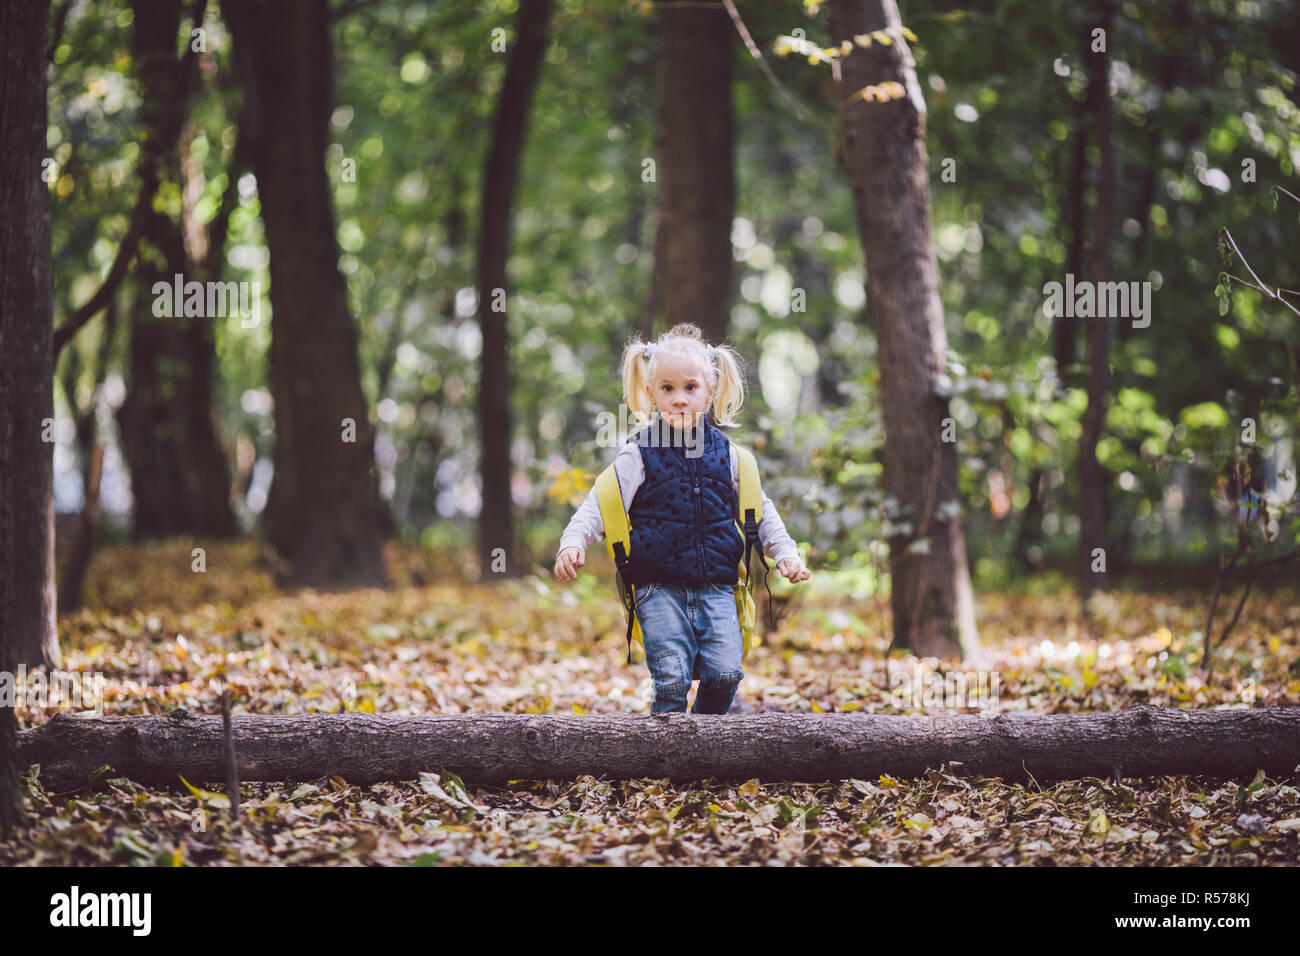 The theme children outdoor activities. Funny little baby Caucasian blond girl walks through forest overcoming obstacles, tree fell, log. Baby hiking big funny backpack in autumn forest park - Stock Image